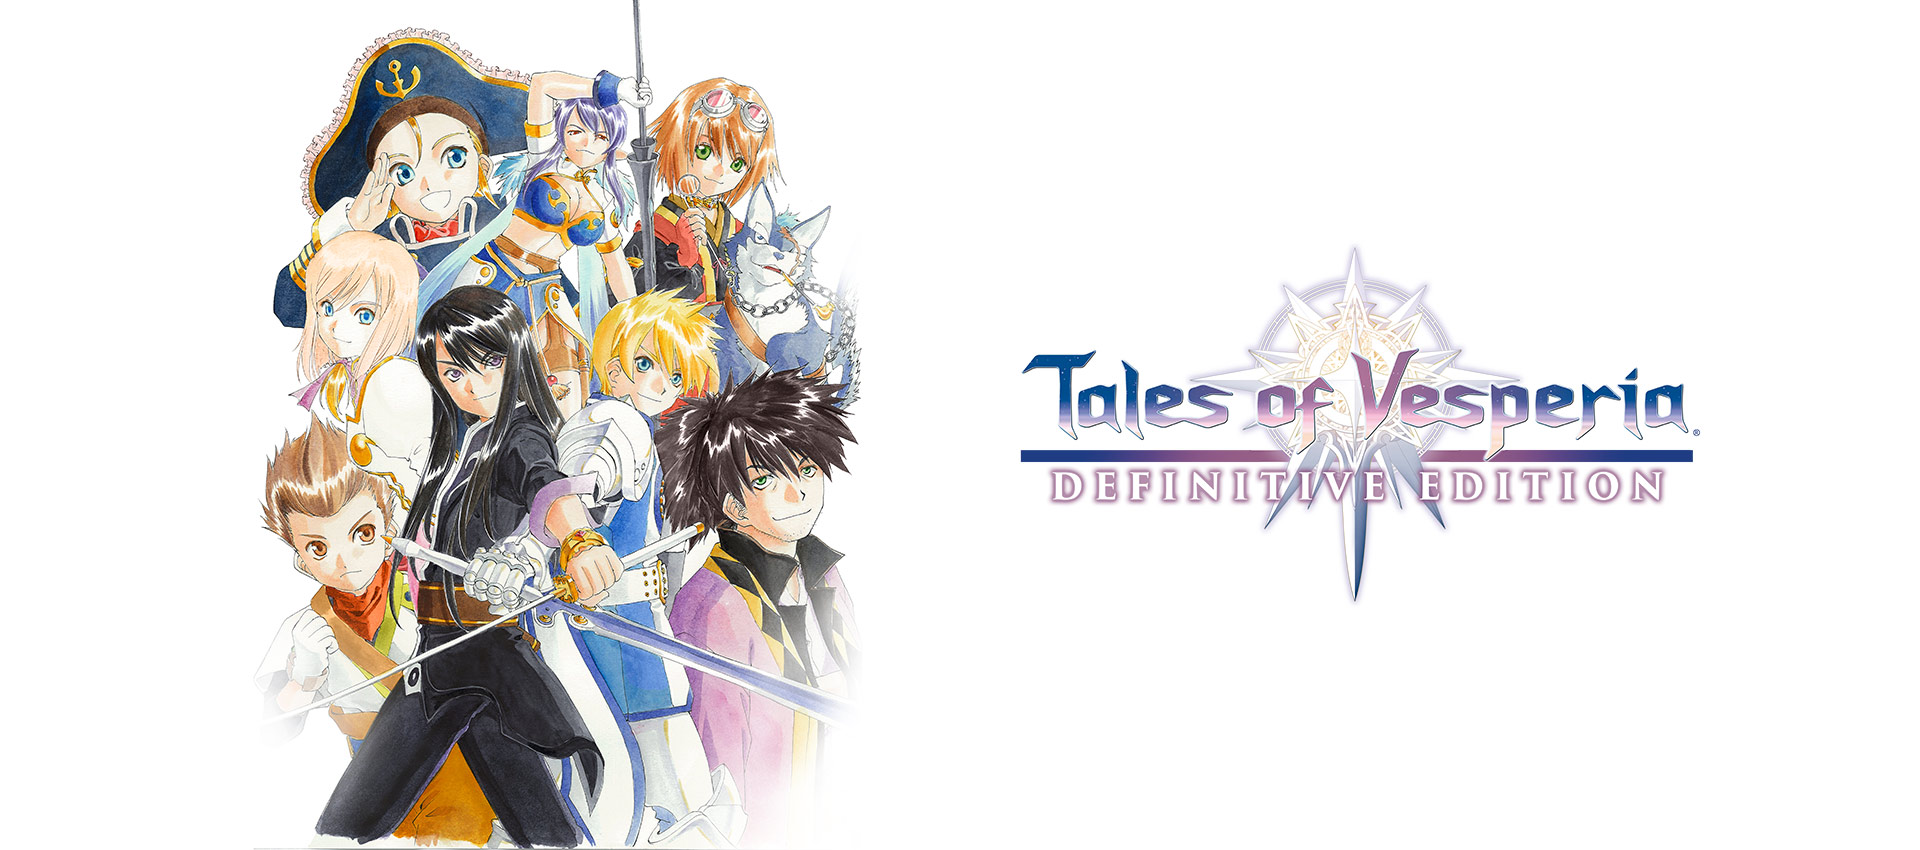 Tales of Vesperia: Definitive Edition, Group of playable characters huddled close together